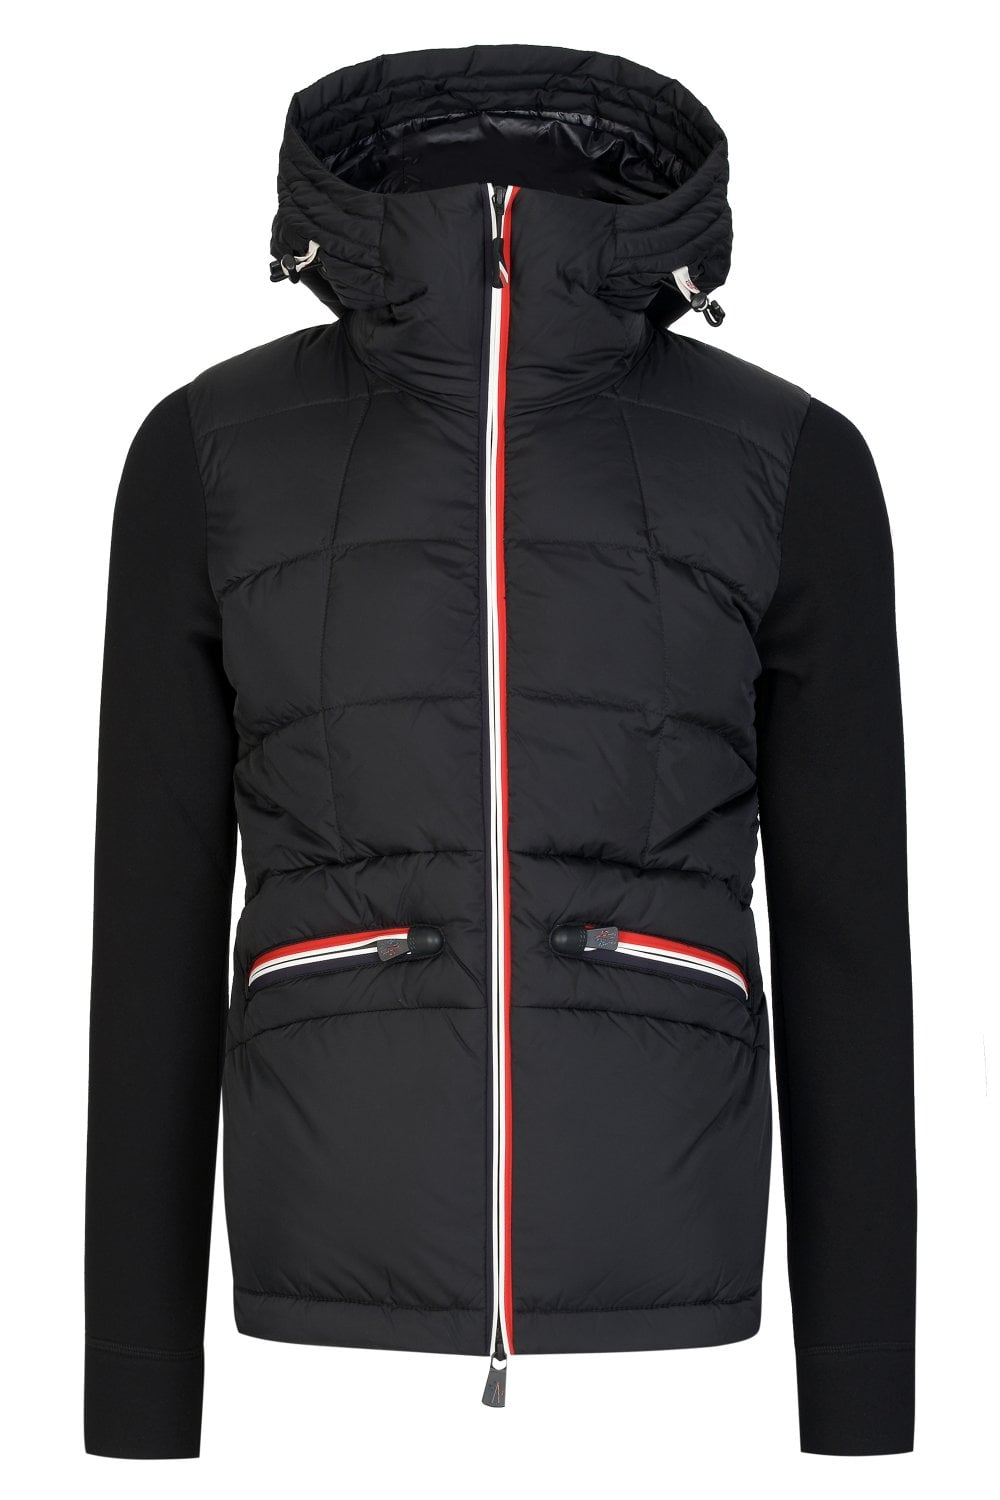 13710557e MONCLER Moncler Grenoble Maglia Cardigan Jacket - Clothing from ...